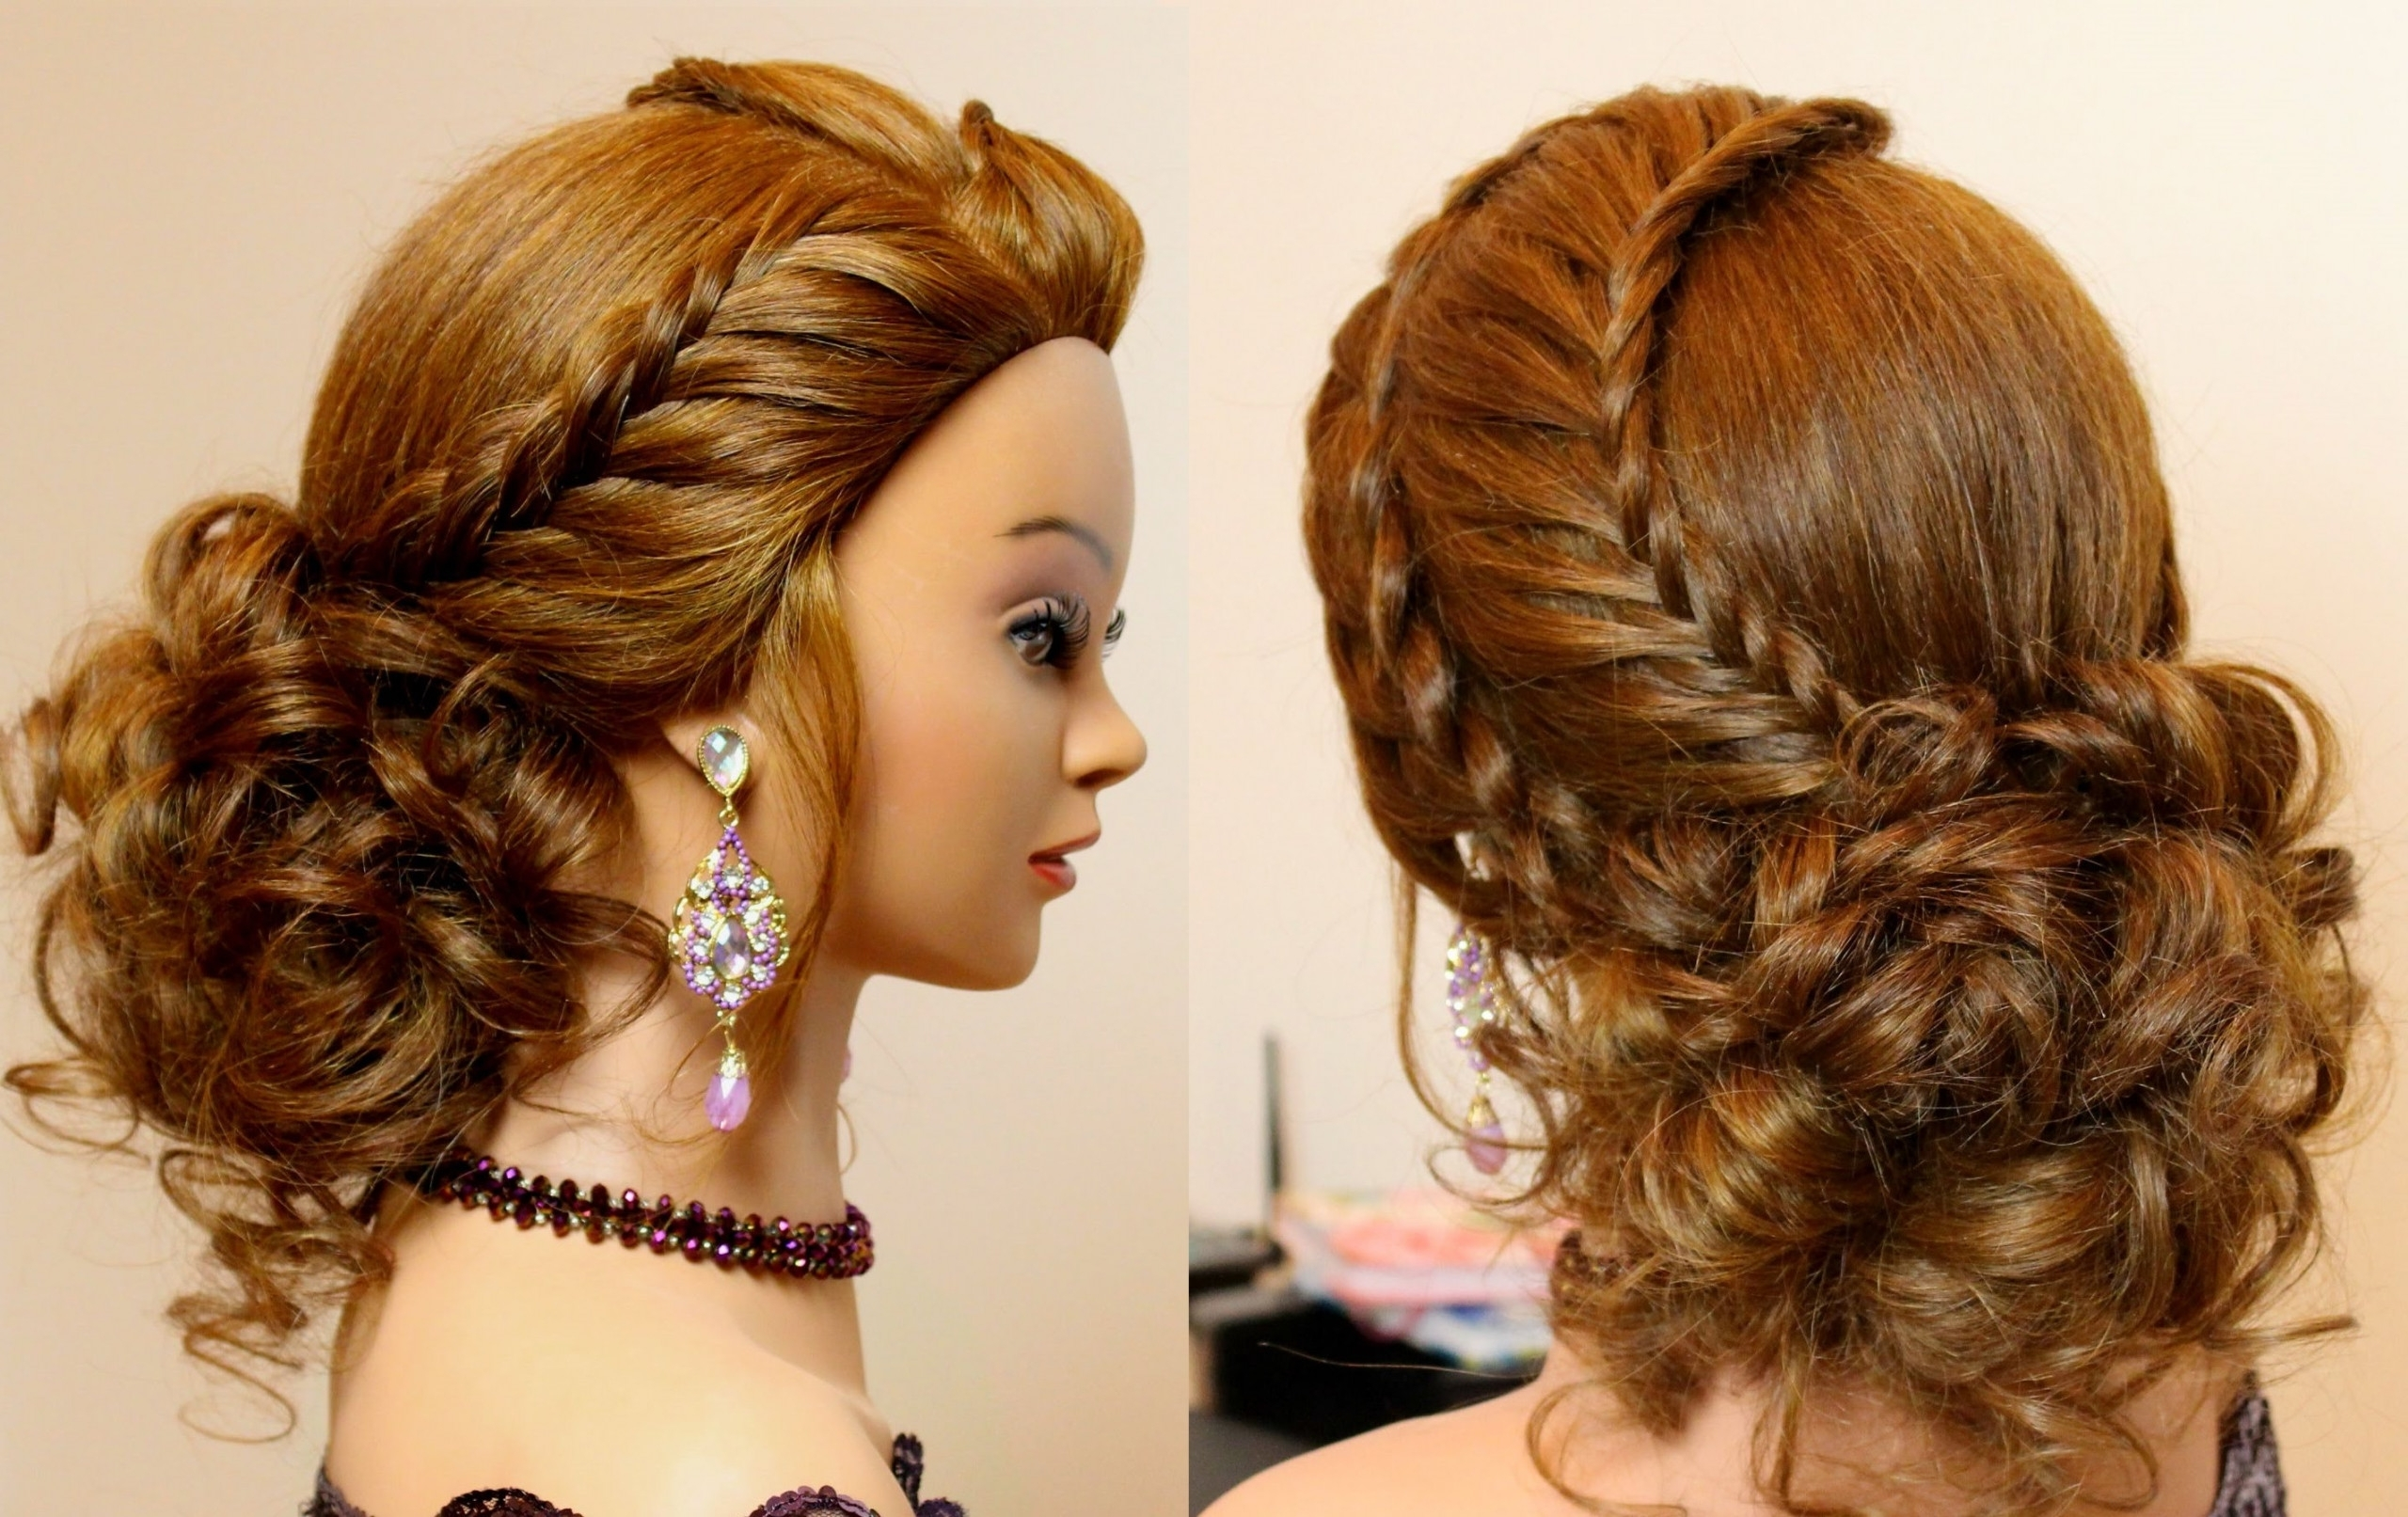 Hairstyle For Prom Bridal Prom Updo Hairstyles For Medium Long Regarding Medium Hair Prom Updo Hairstyles (View 6 of 15)